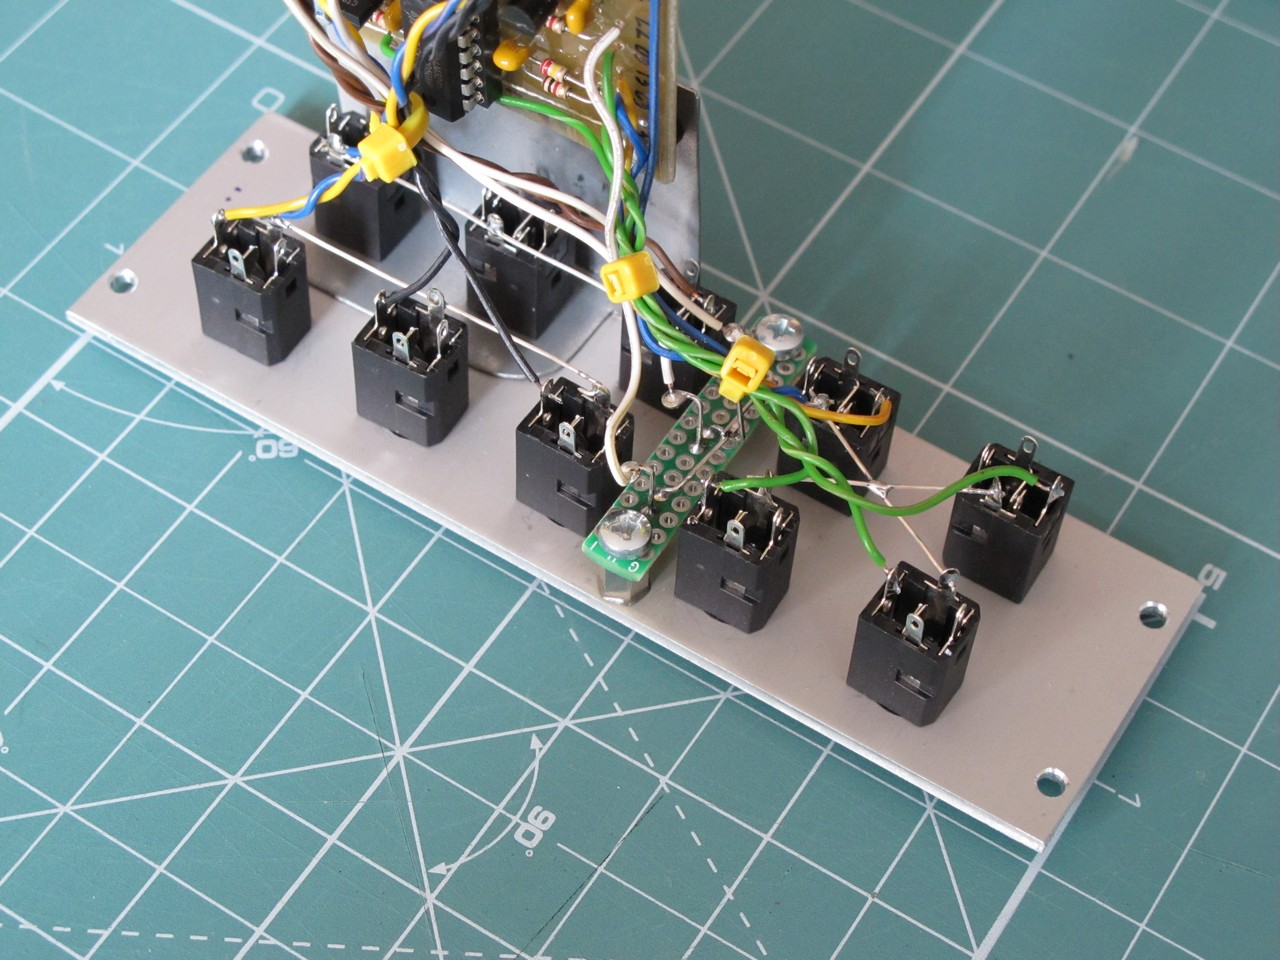 Side view of the eurorack multiple module